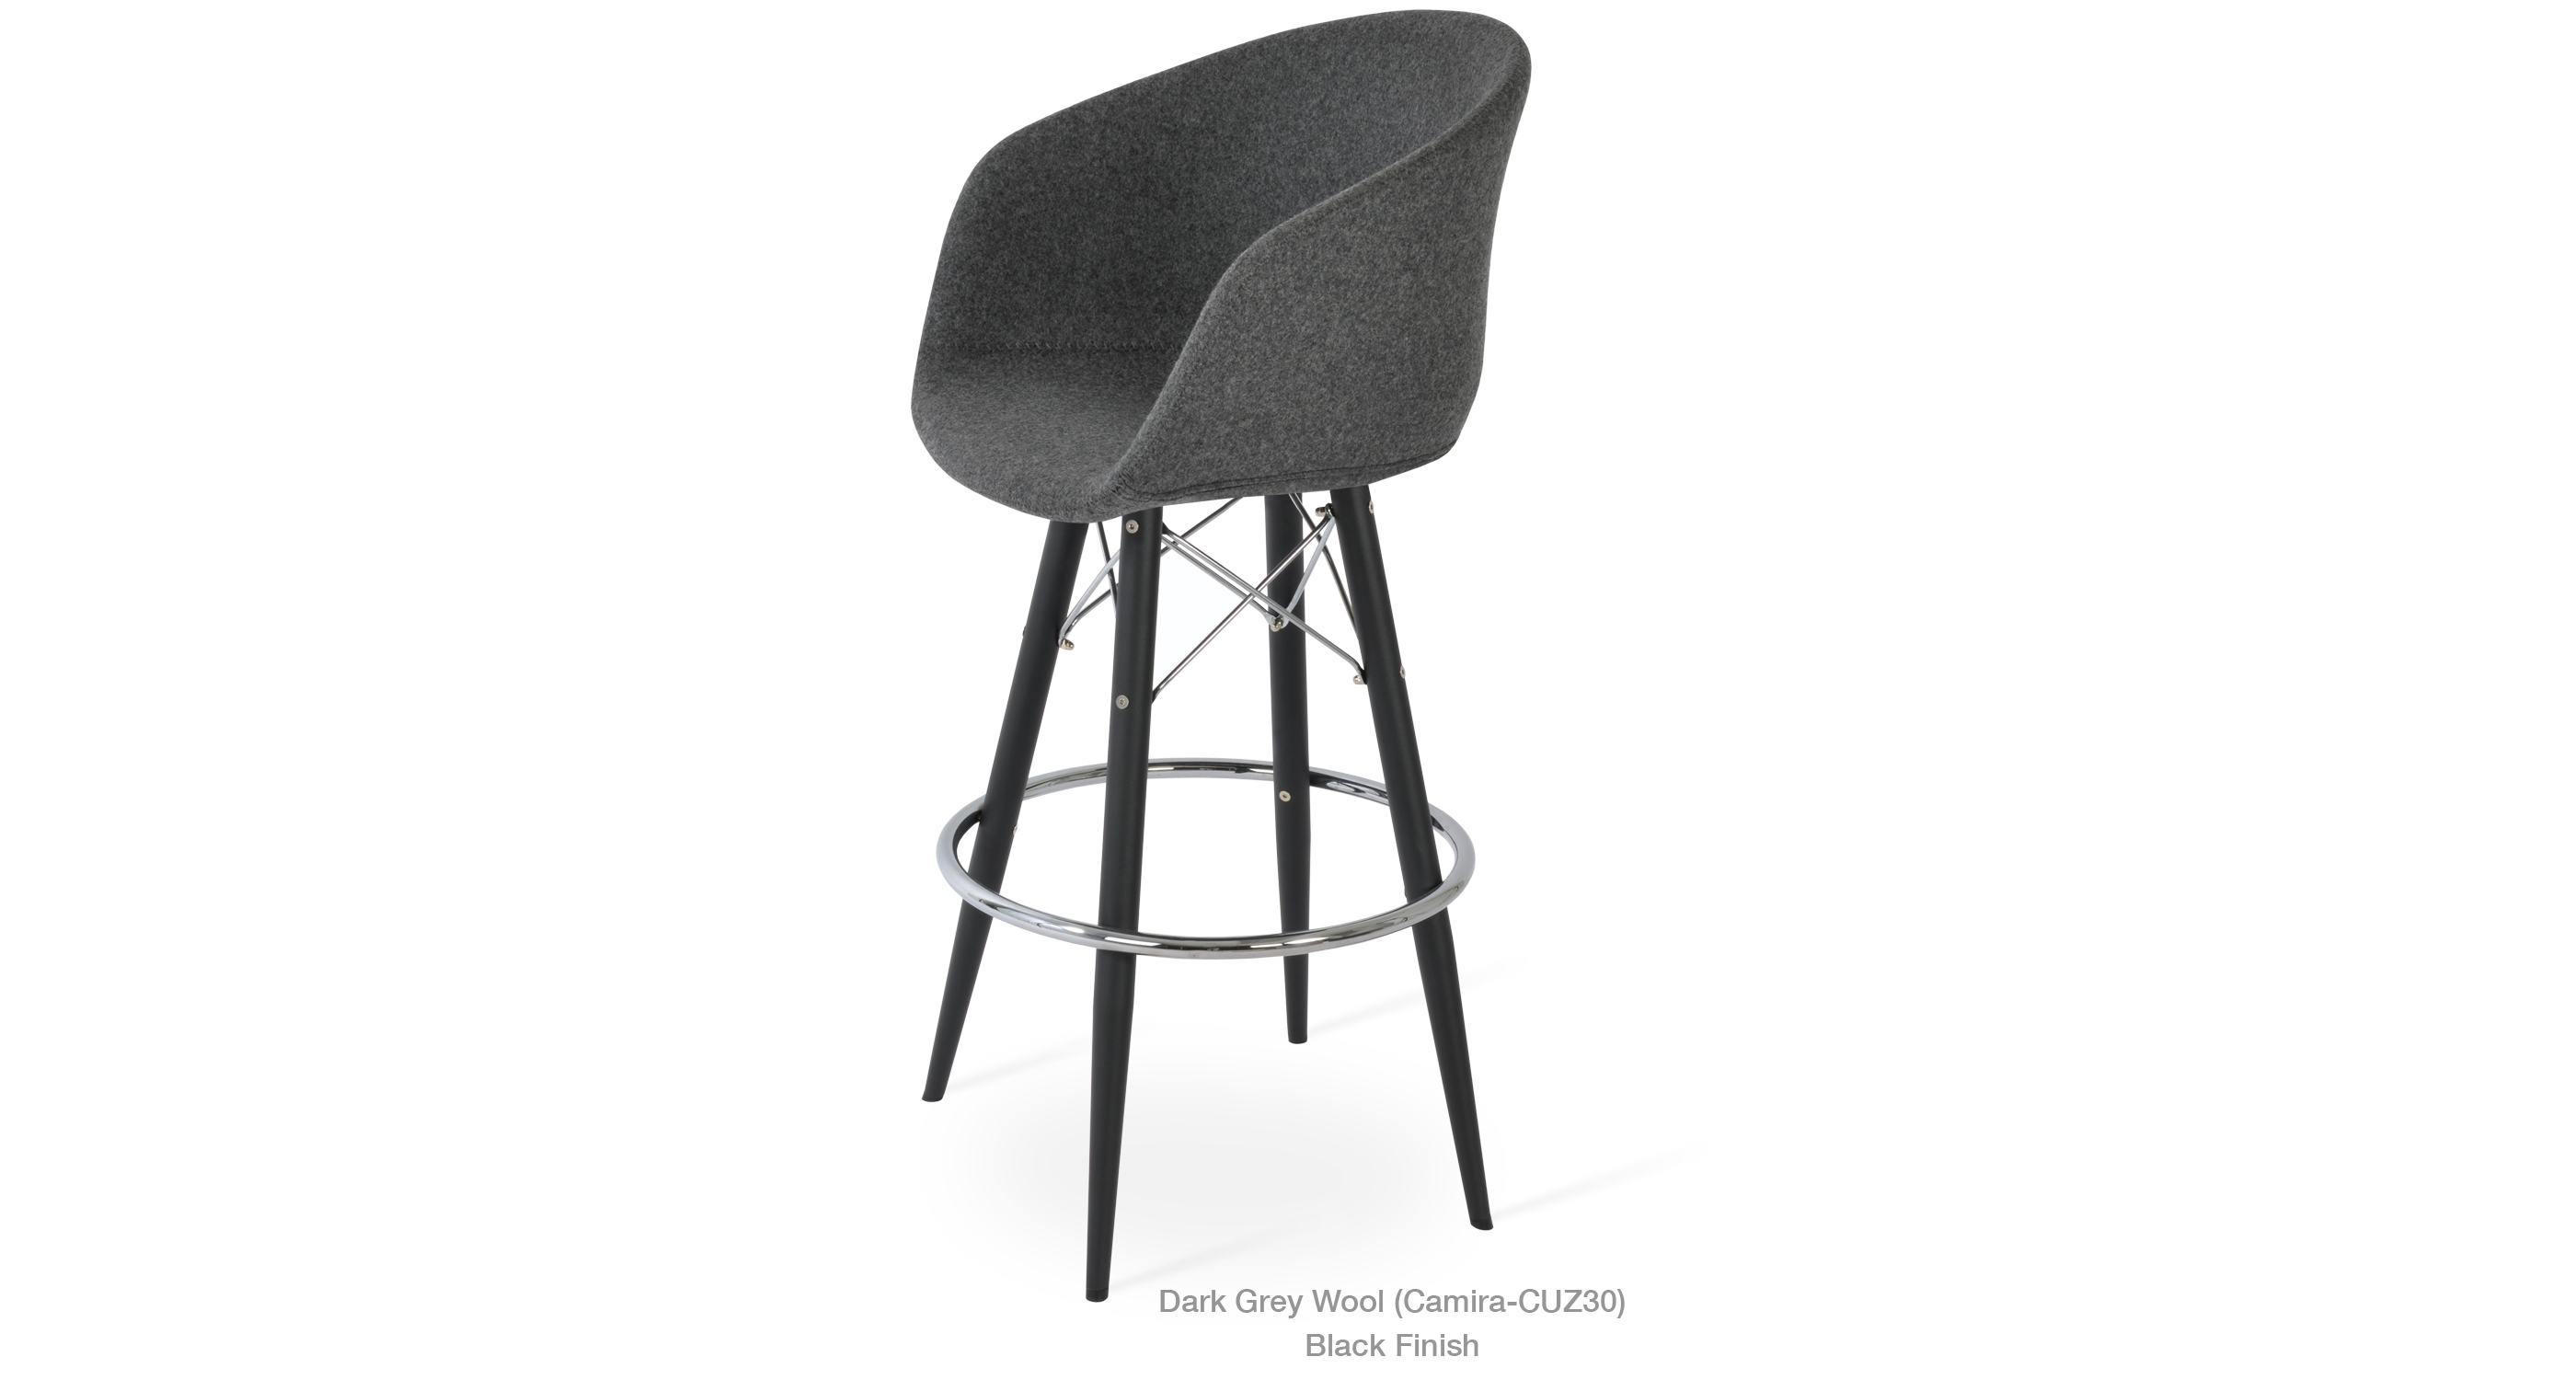 Tribeca Mw Stool Dark Grey Wool